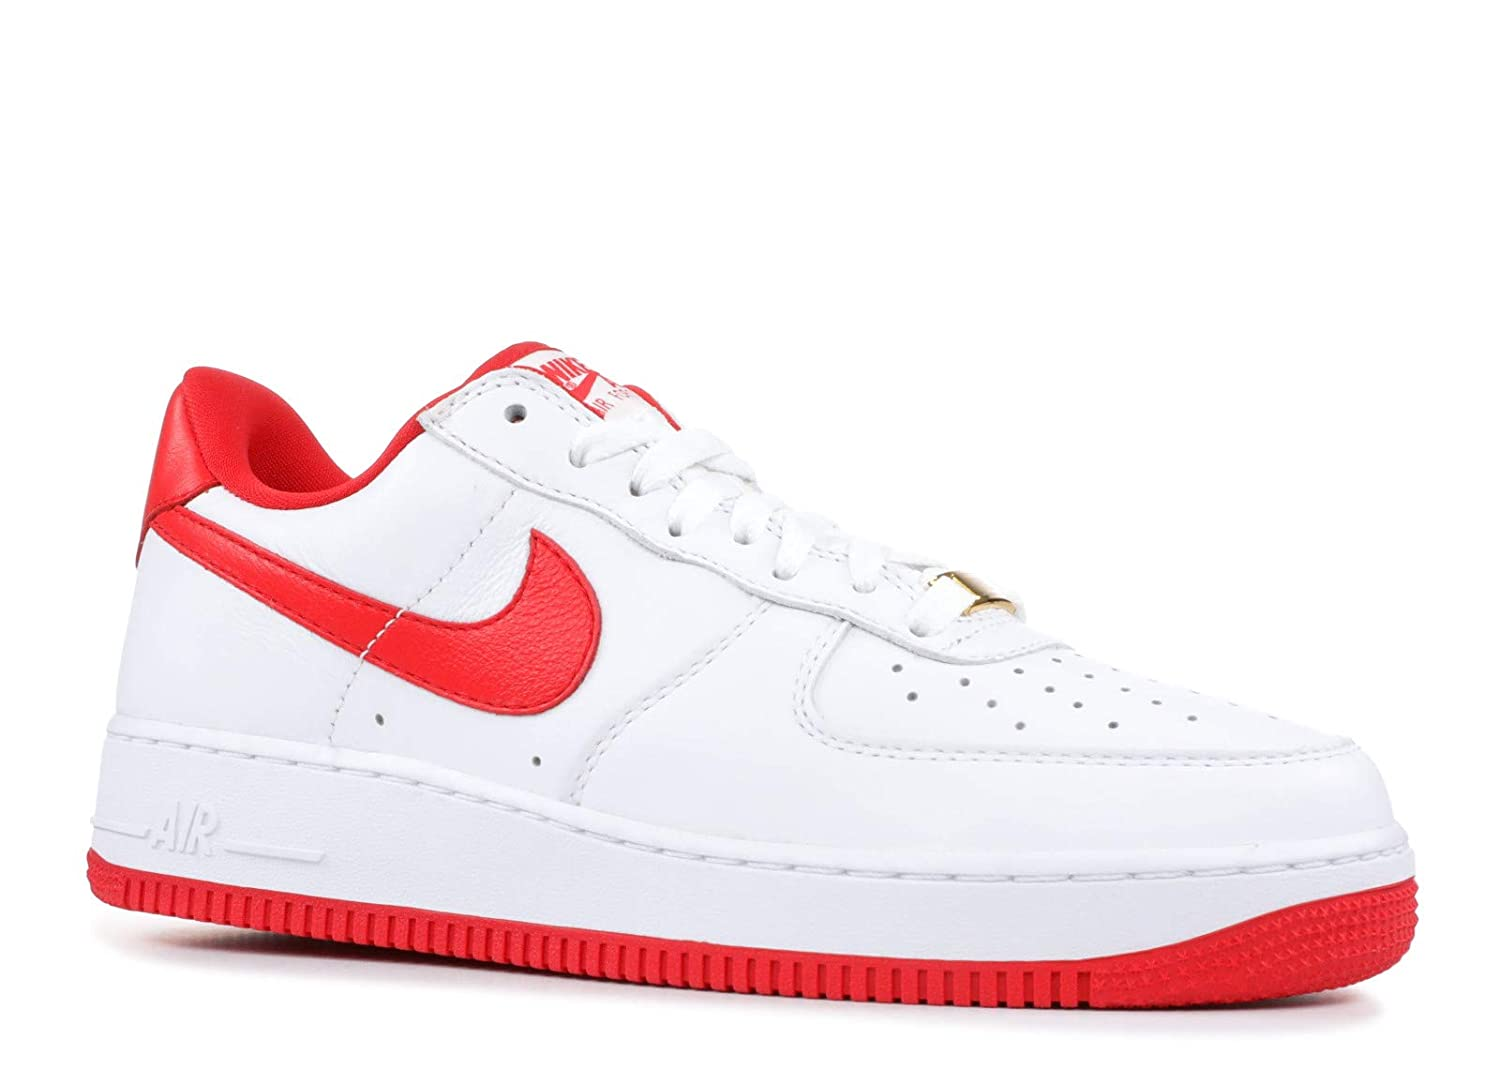 2air force 1 retro